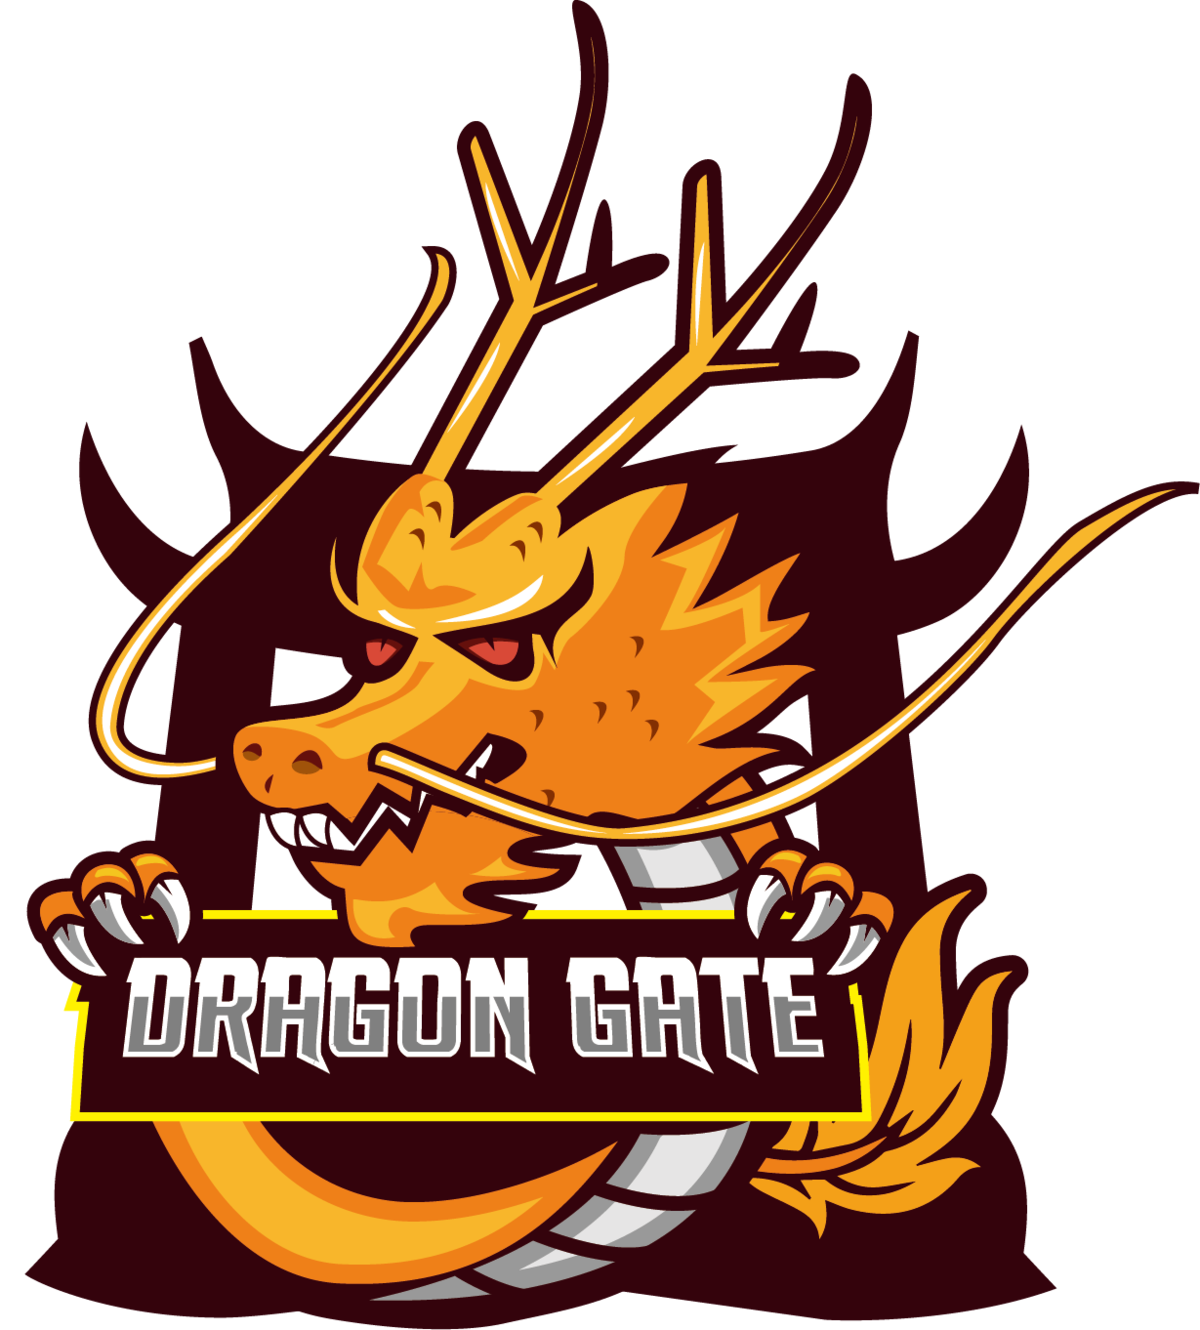 Dragon Gate Team (lol)